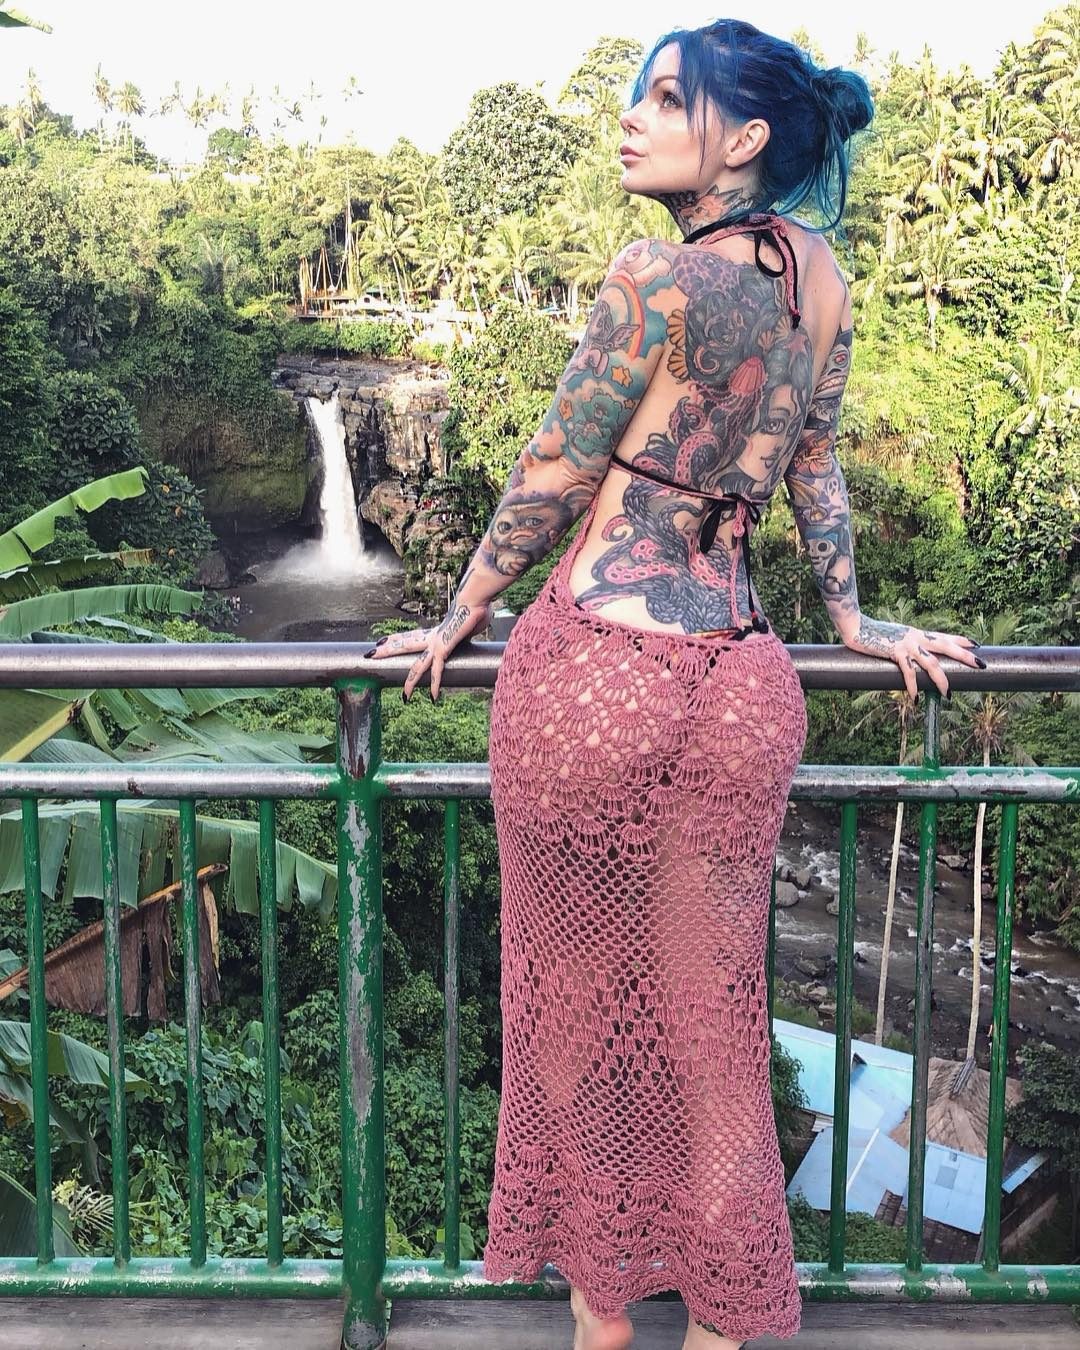 Riae-Wallpapers-Insta-Fit-Girls-3